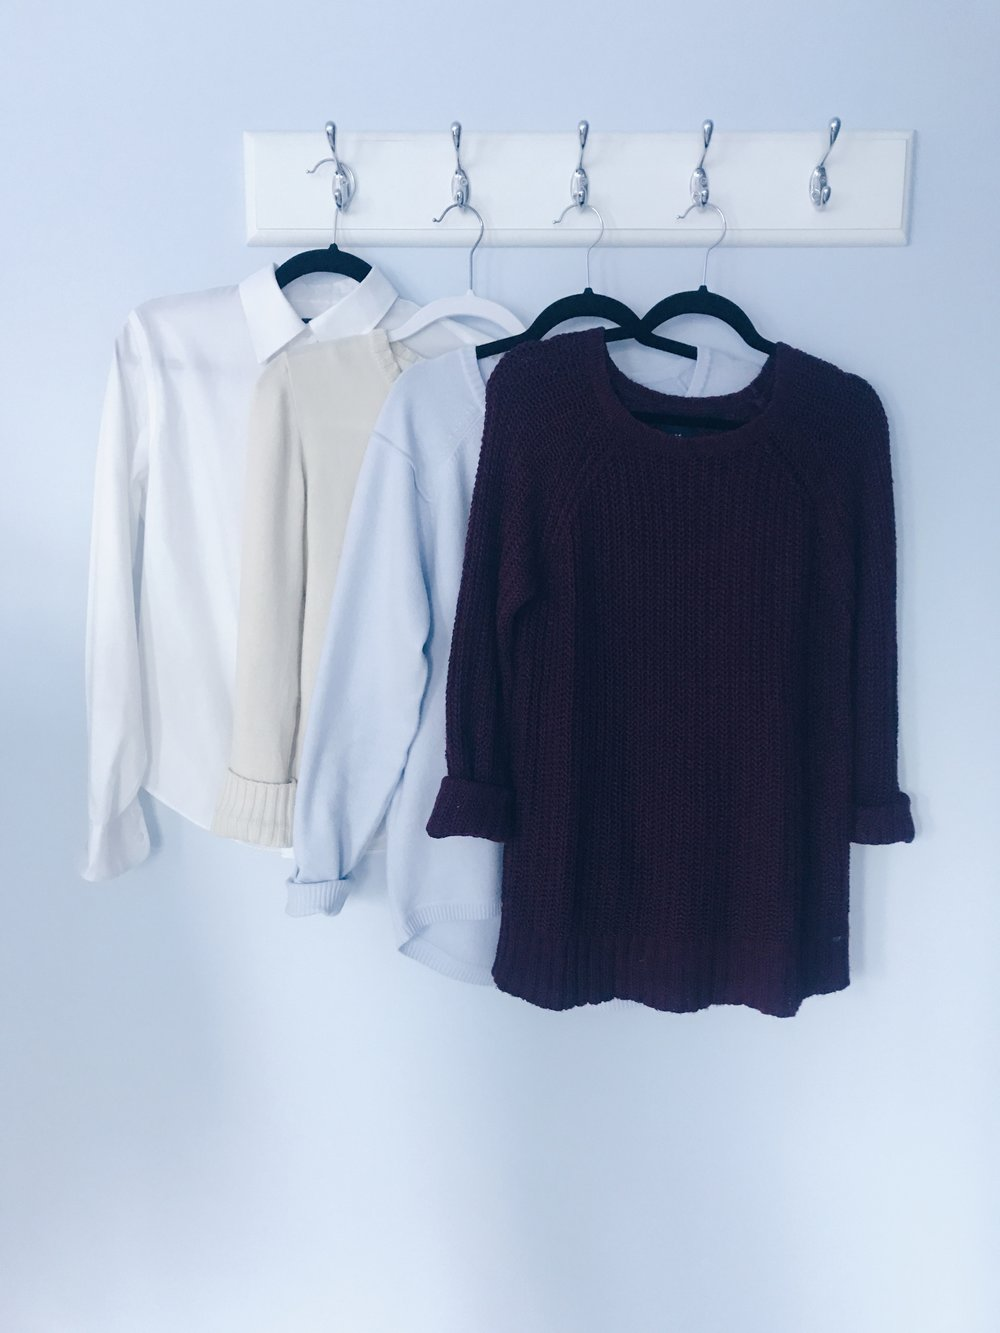 Sweaters! Throw your favorite sweater on when it gets chilly out. The collar peaking out and cuffed sleeves will give you a smarter cozy look.